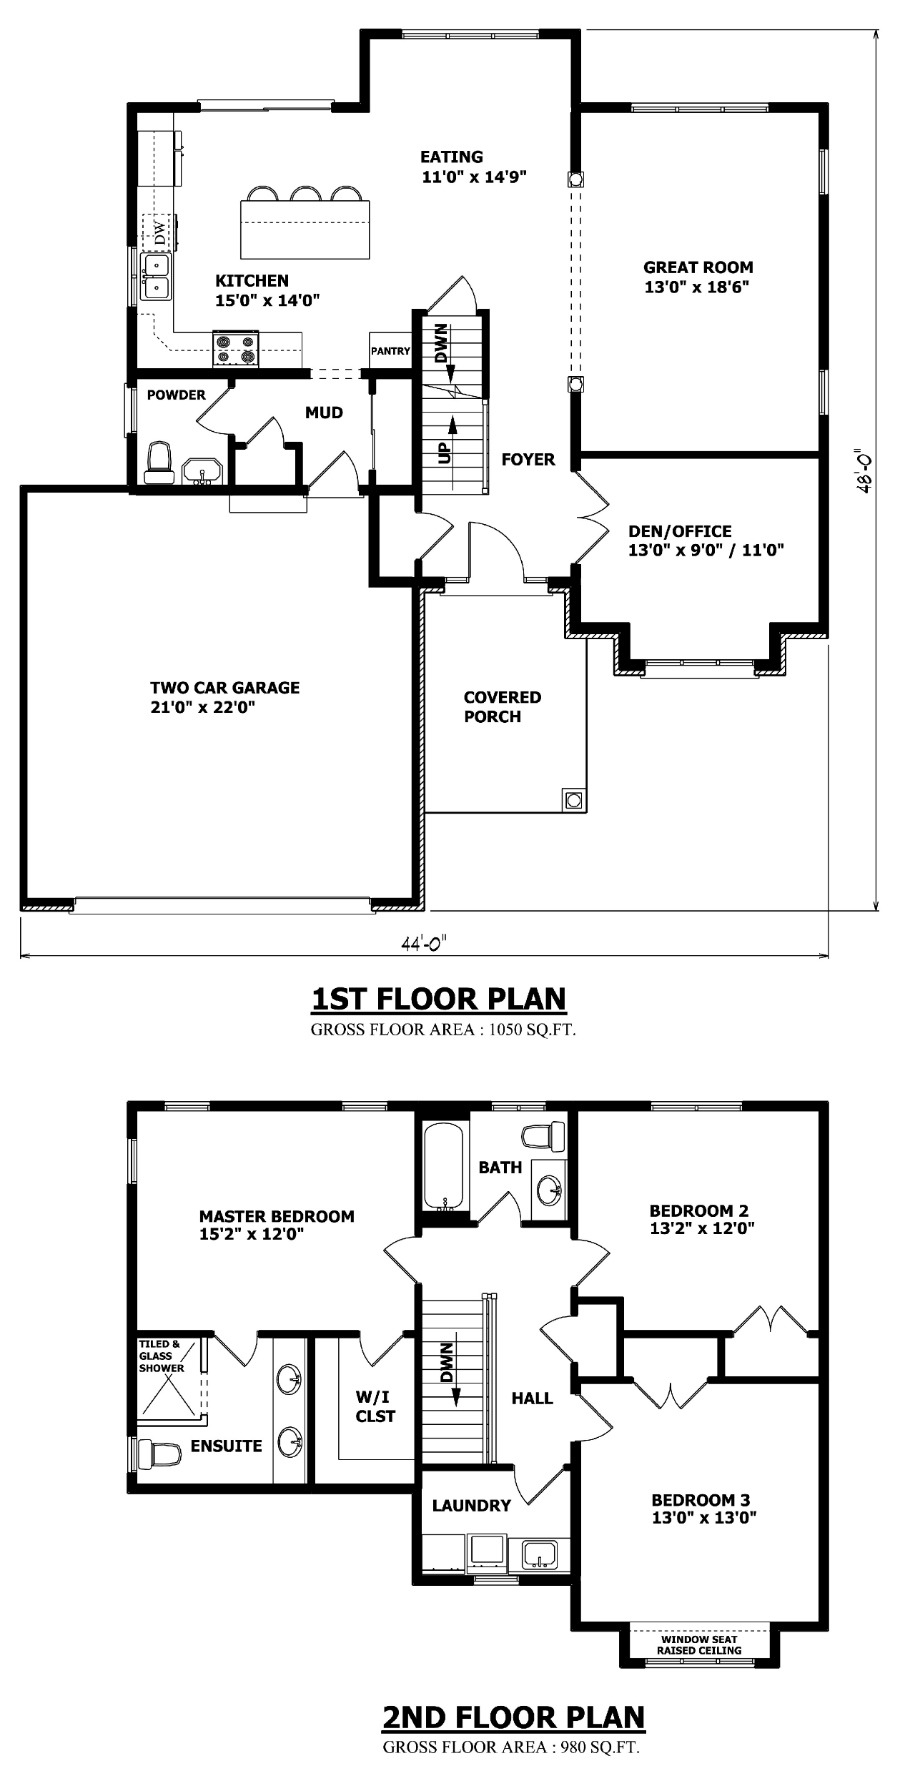 House Plans Canada with Photos Elegant Canadian Home Designs Custom House Plans Stock House